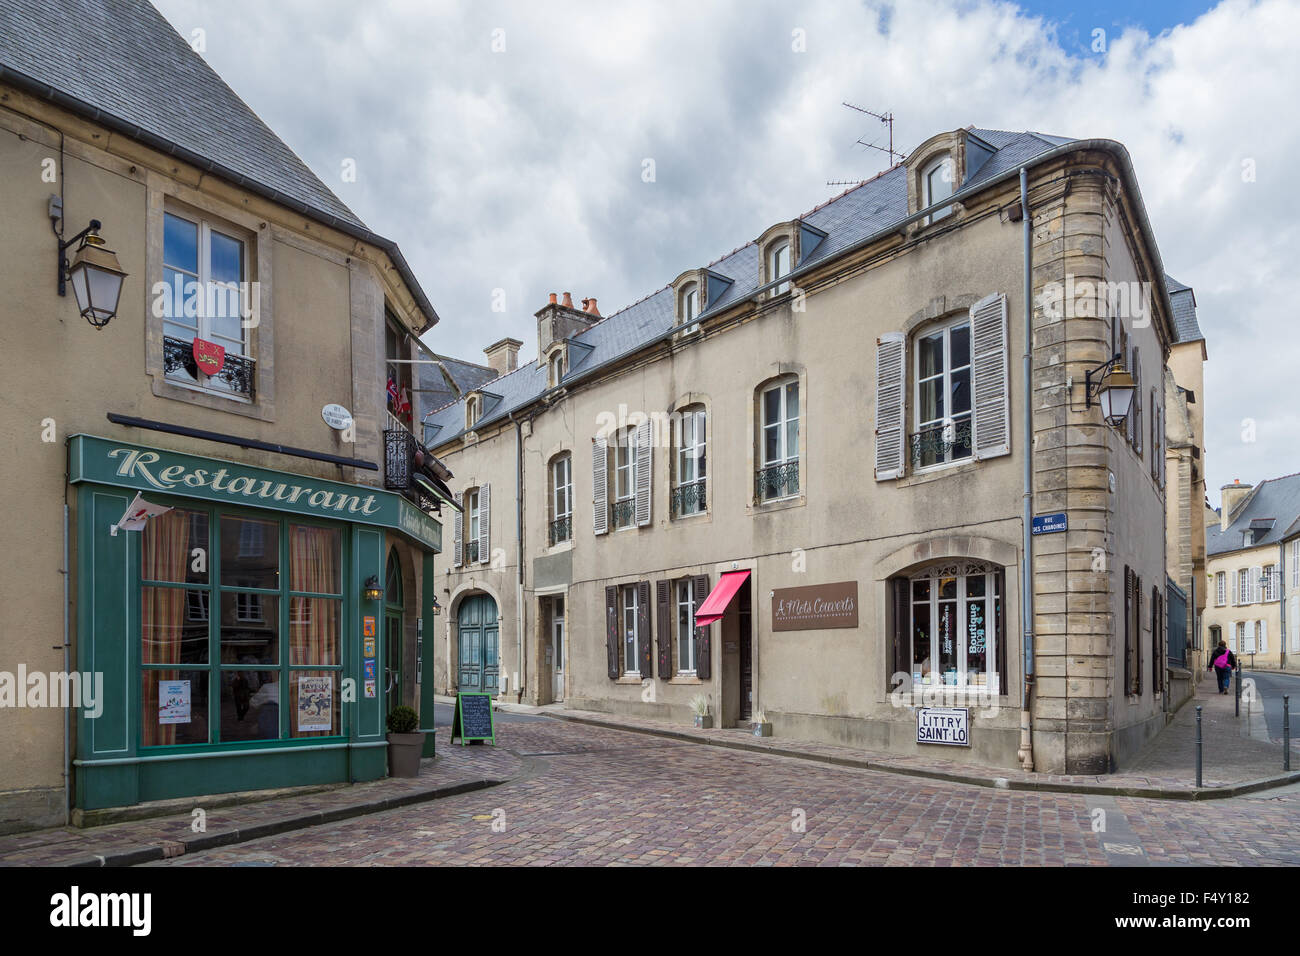 Historic Bayeux Street Scene Of Shops Restaurants And Apartments Stock Photo Alamy